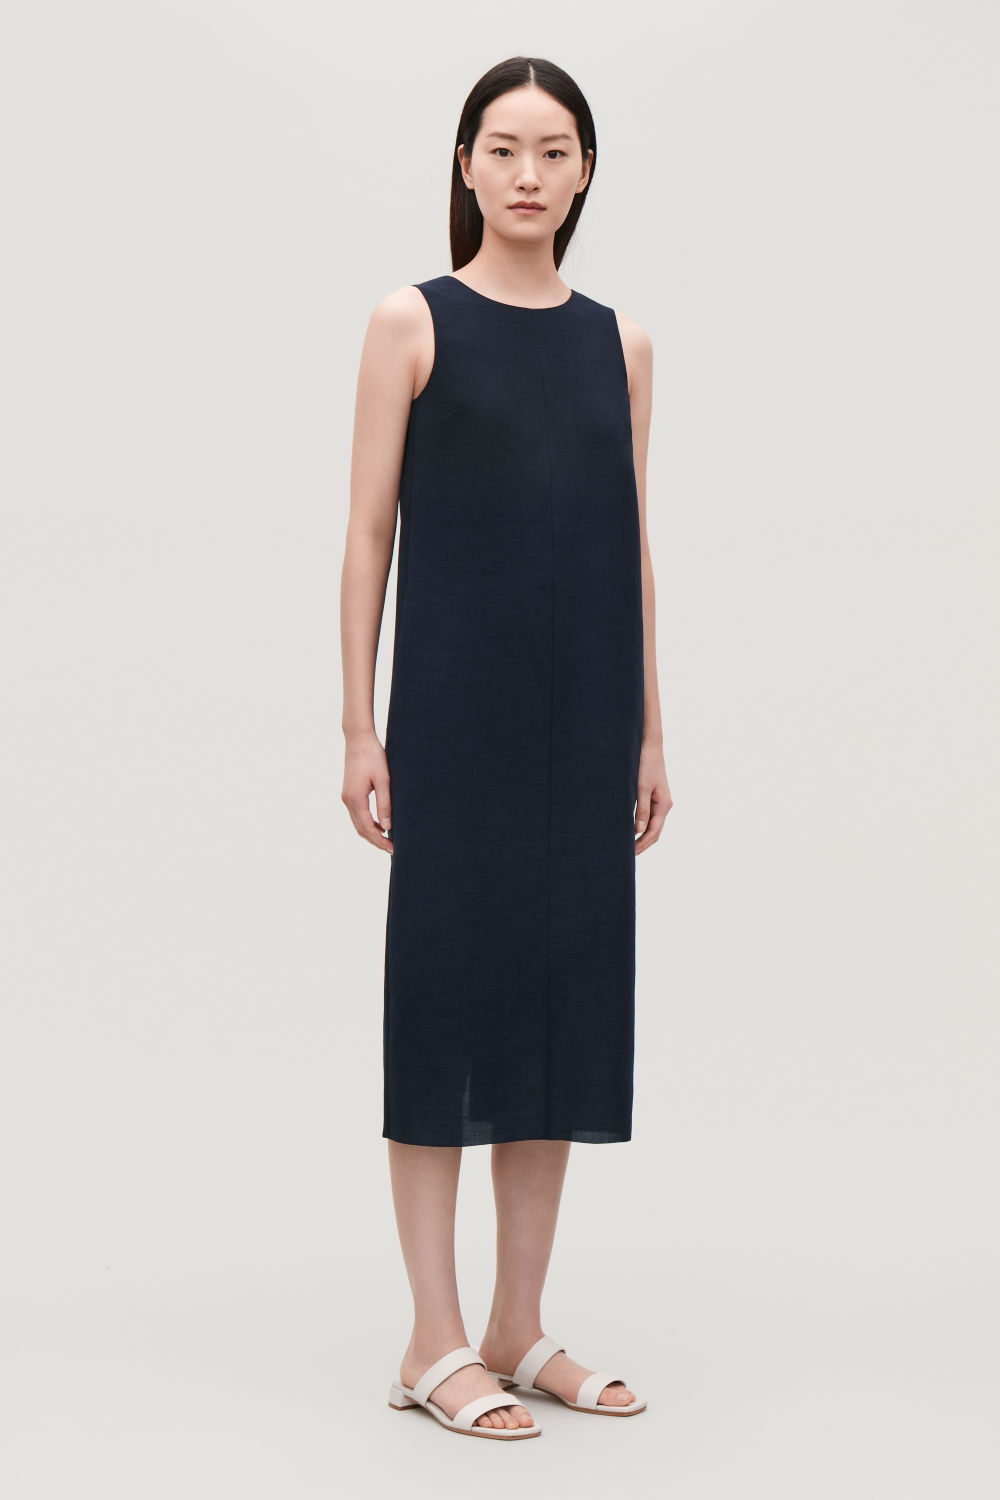 COS V-BACK SLEEVELESS DRESS,Navy